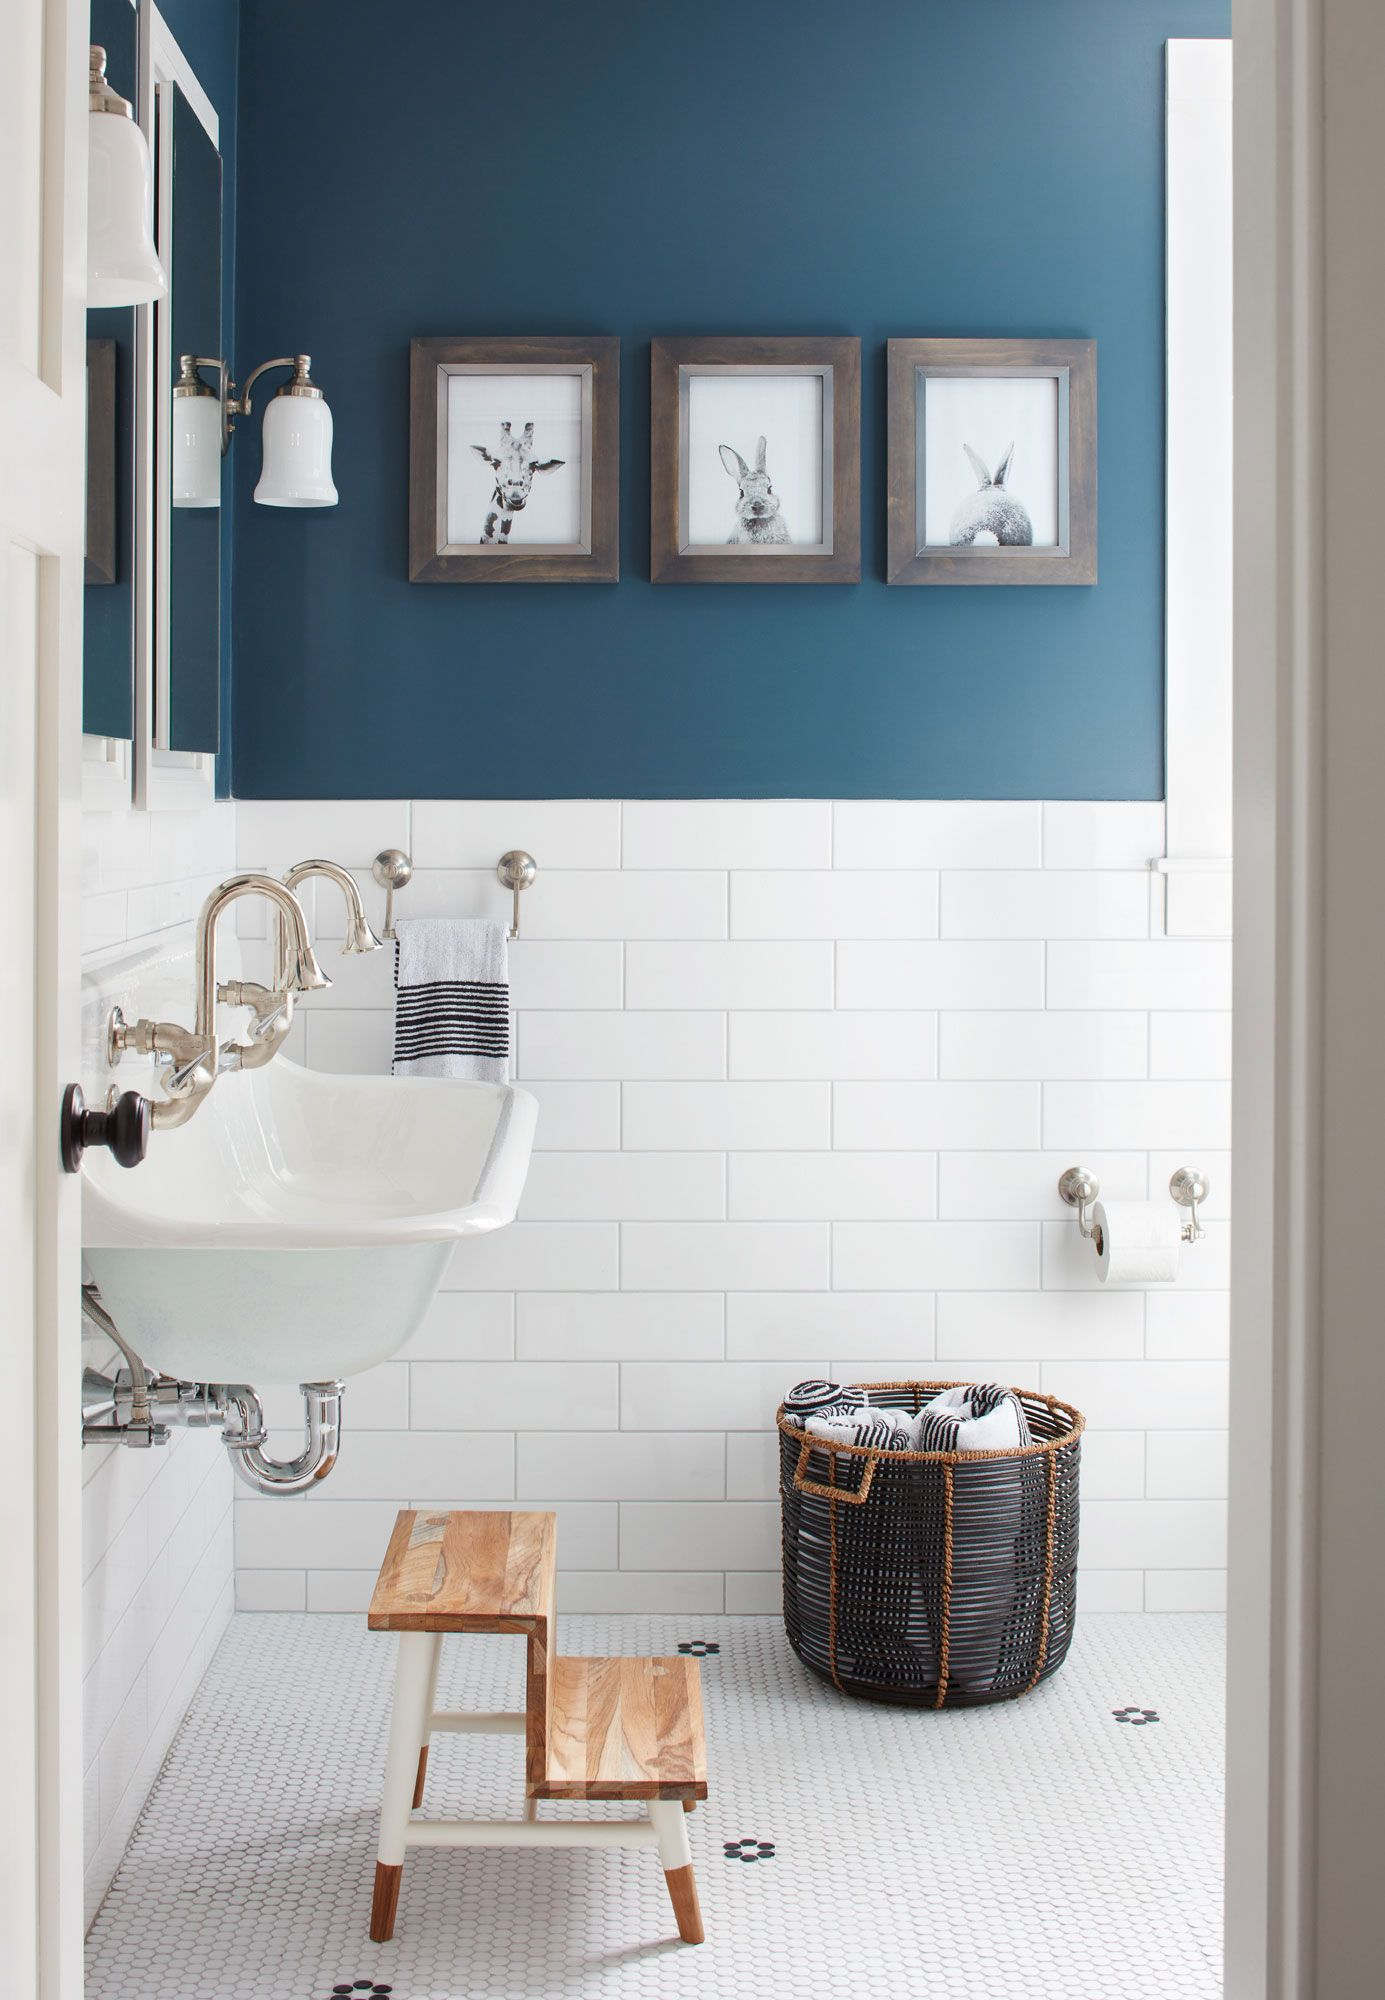 Blue Bathroom Ideas To Inspire Your Remodel | bathroom ideas ...